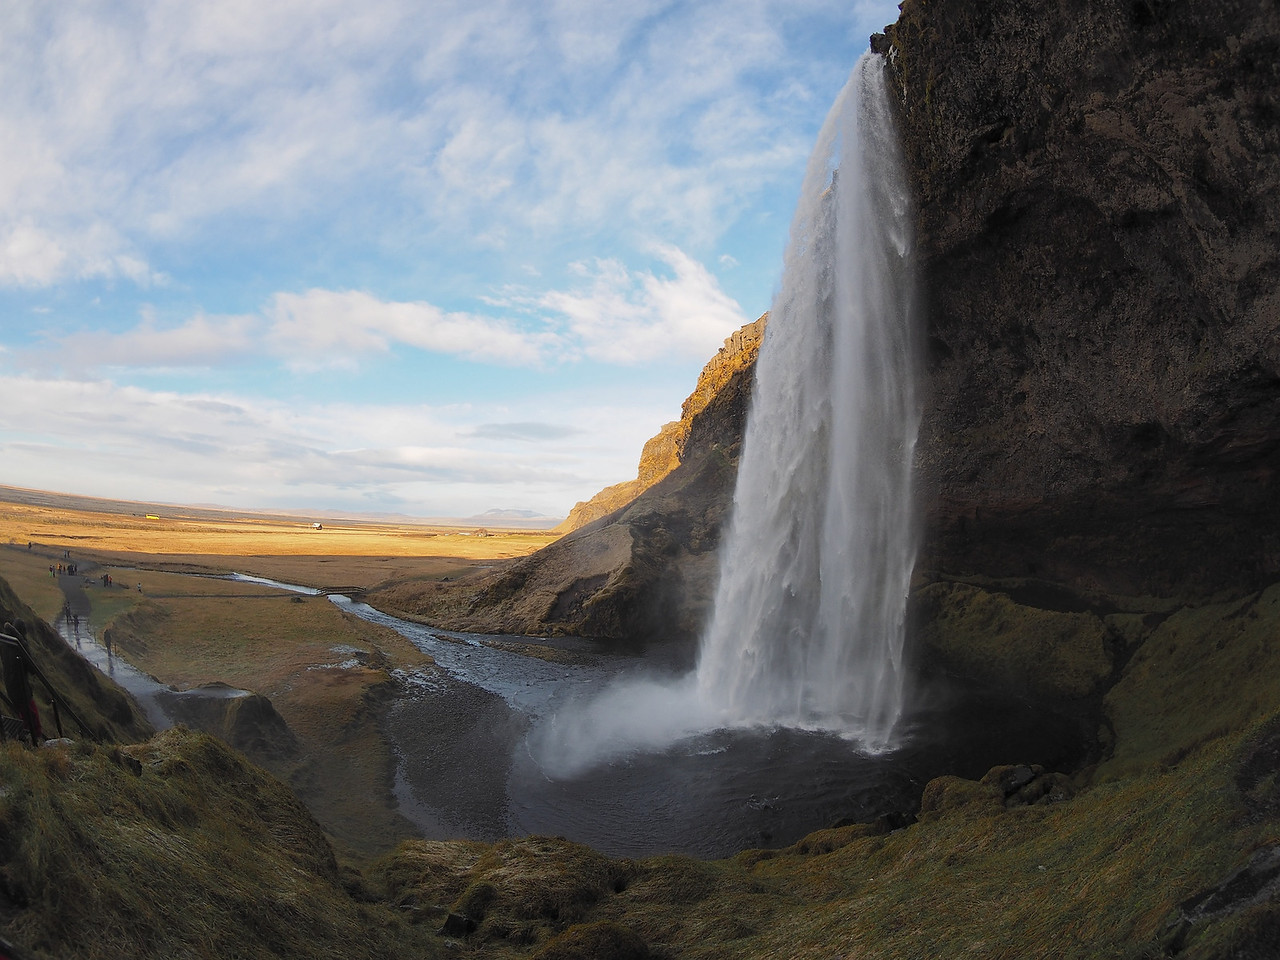 Seljalandsfoss waterfall. Olympus E-M1, 8mm fisheye 4/3 lens. , ISO 200. Another spectacular waterfall and one you can walk behind. This shot captured with the 4/3 8mm fisheye which had no problem exposing or focusing when used on the E-M1 (with adapter). So pleased to know that my 4/3 lenses are producing equally, if not better images with the E-M1.